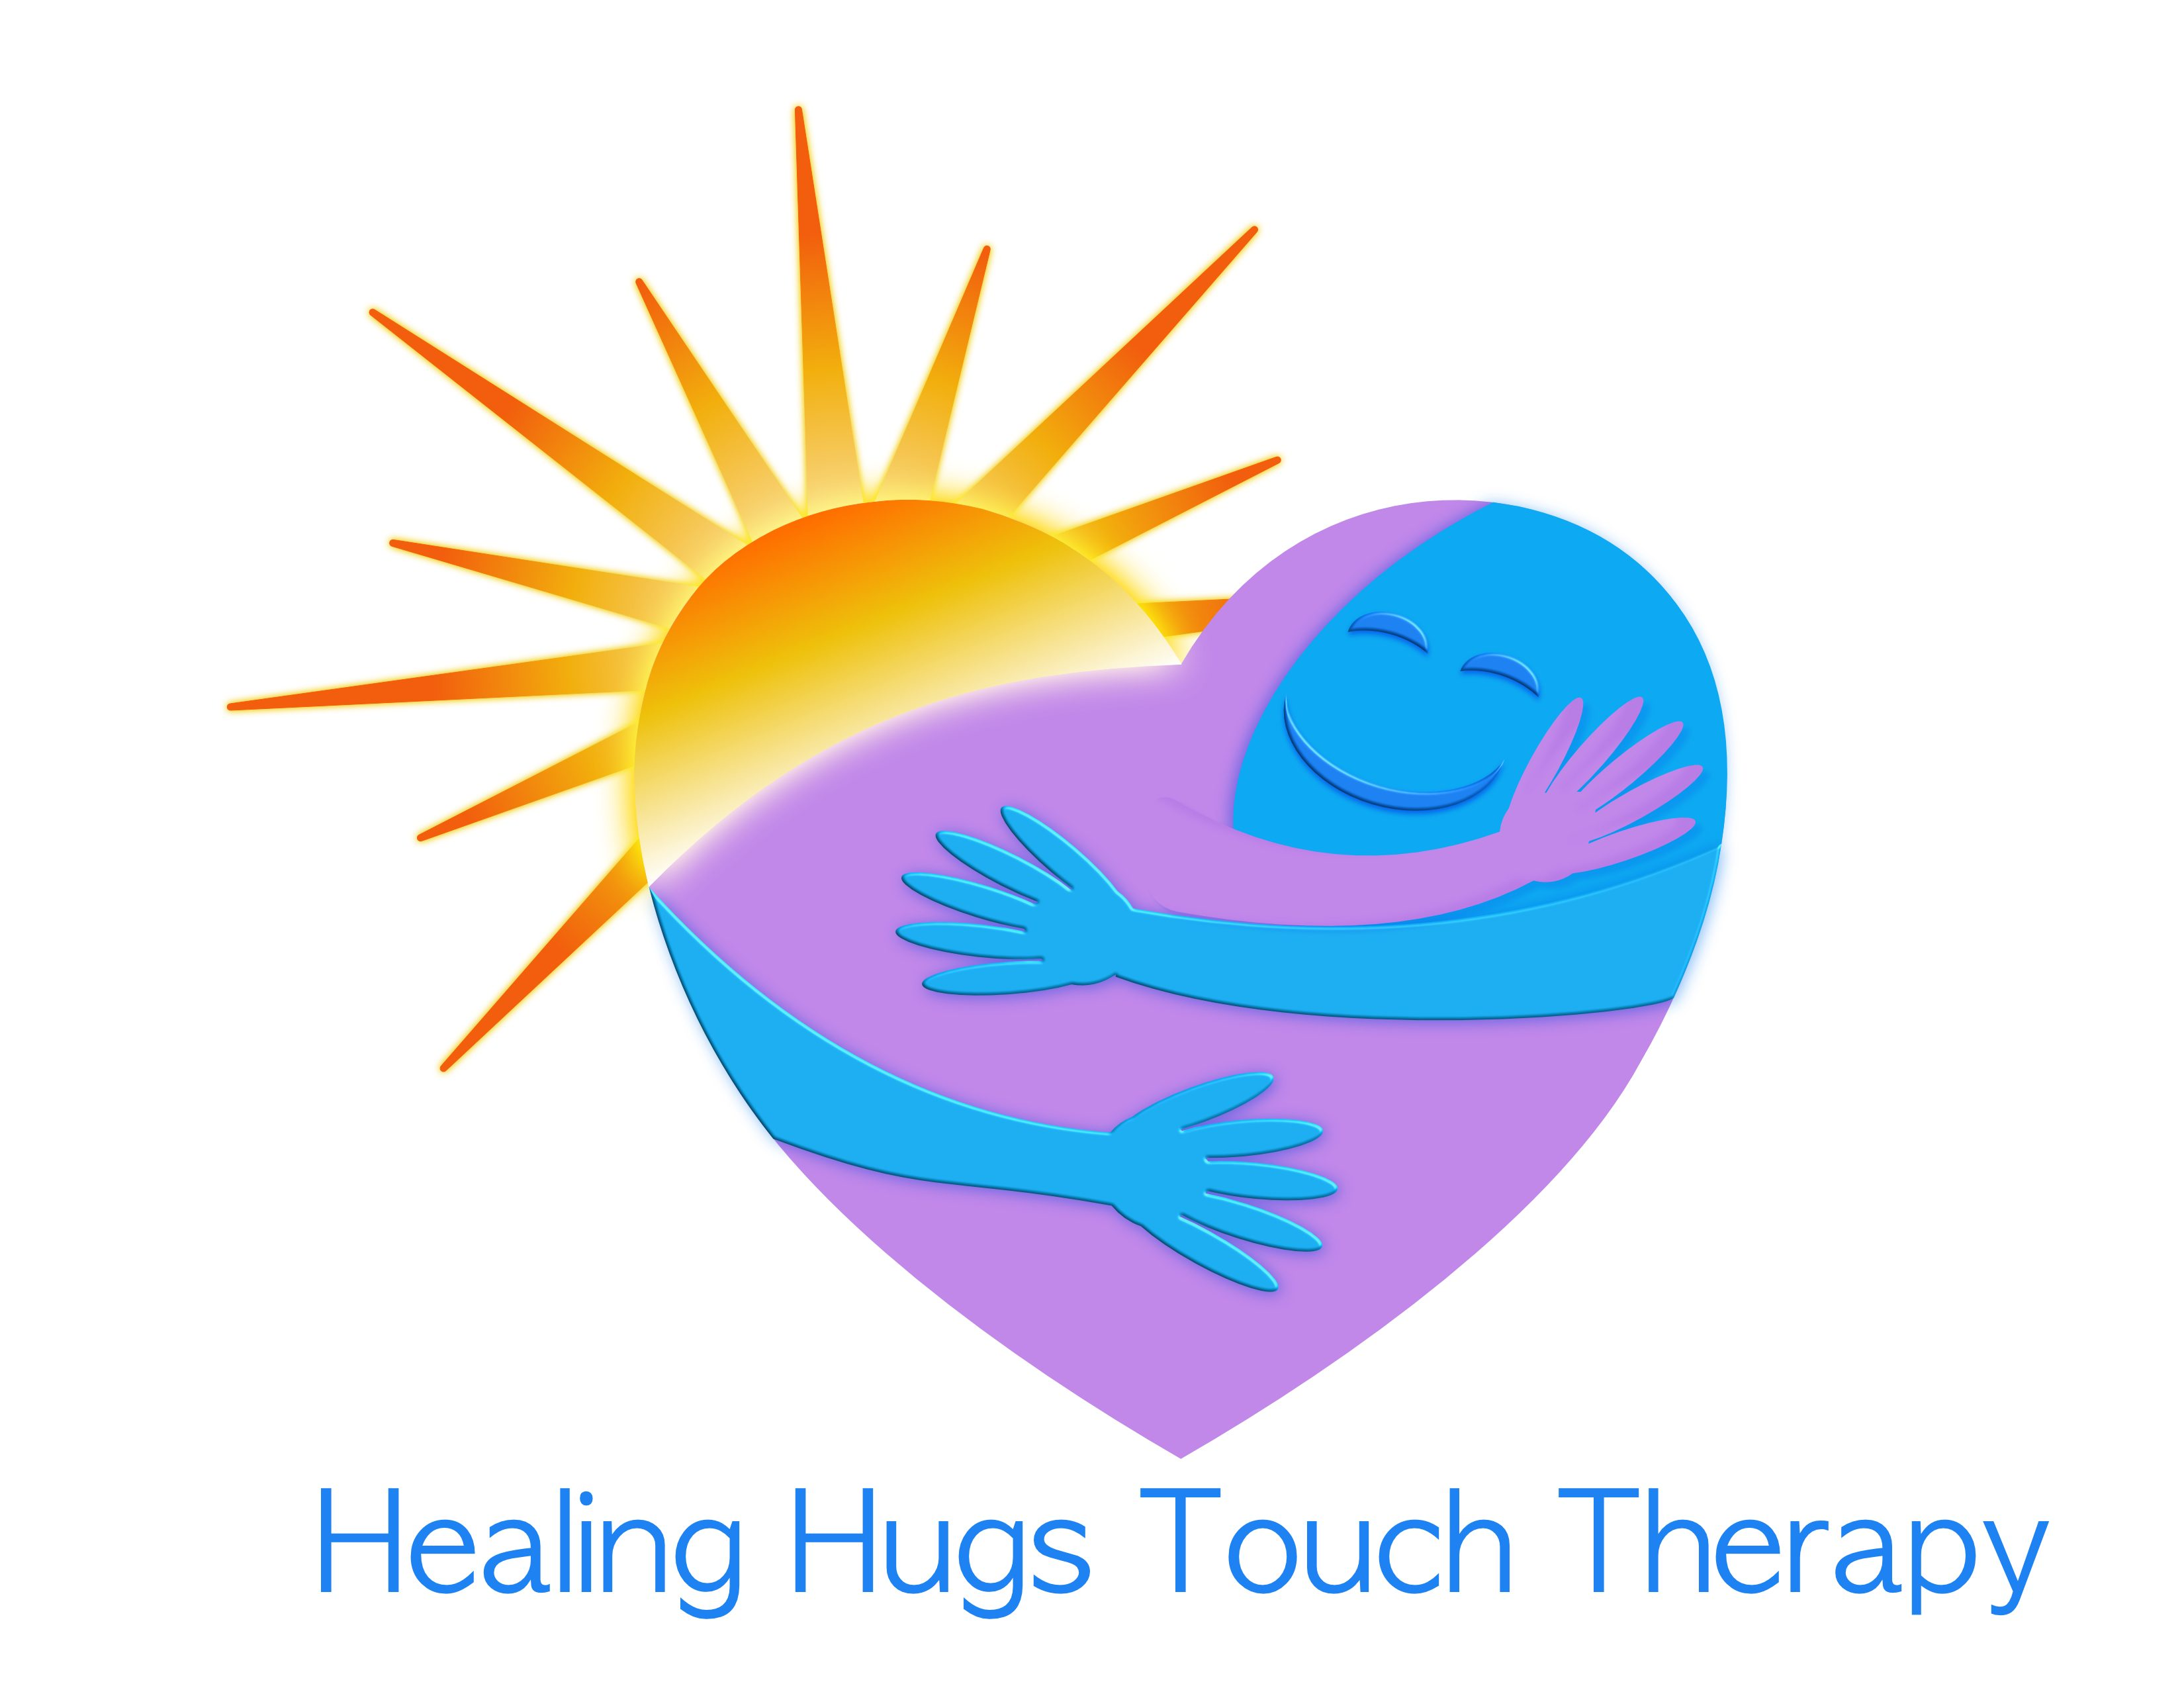 Healing Hugs Touch Therapy